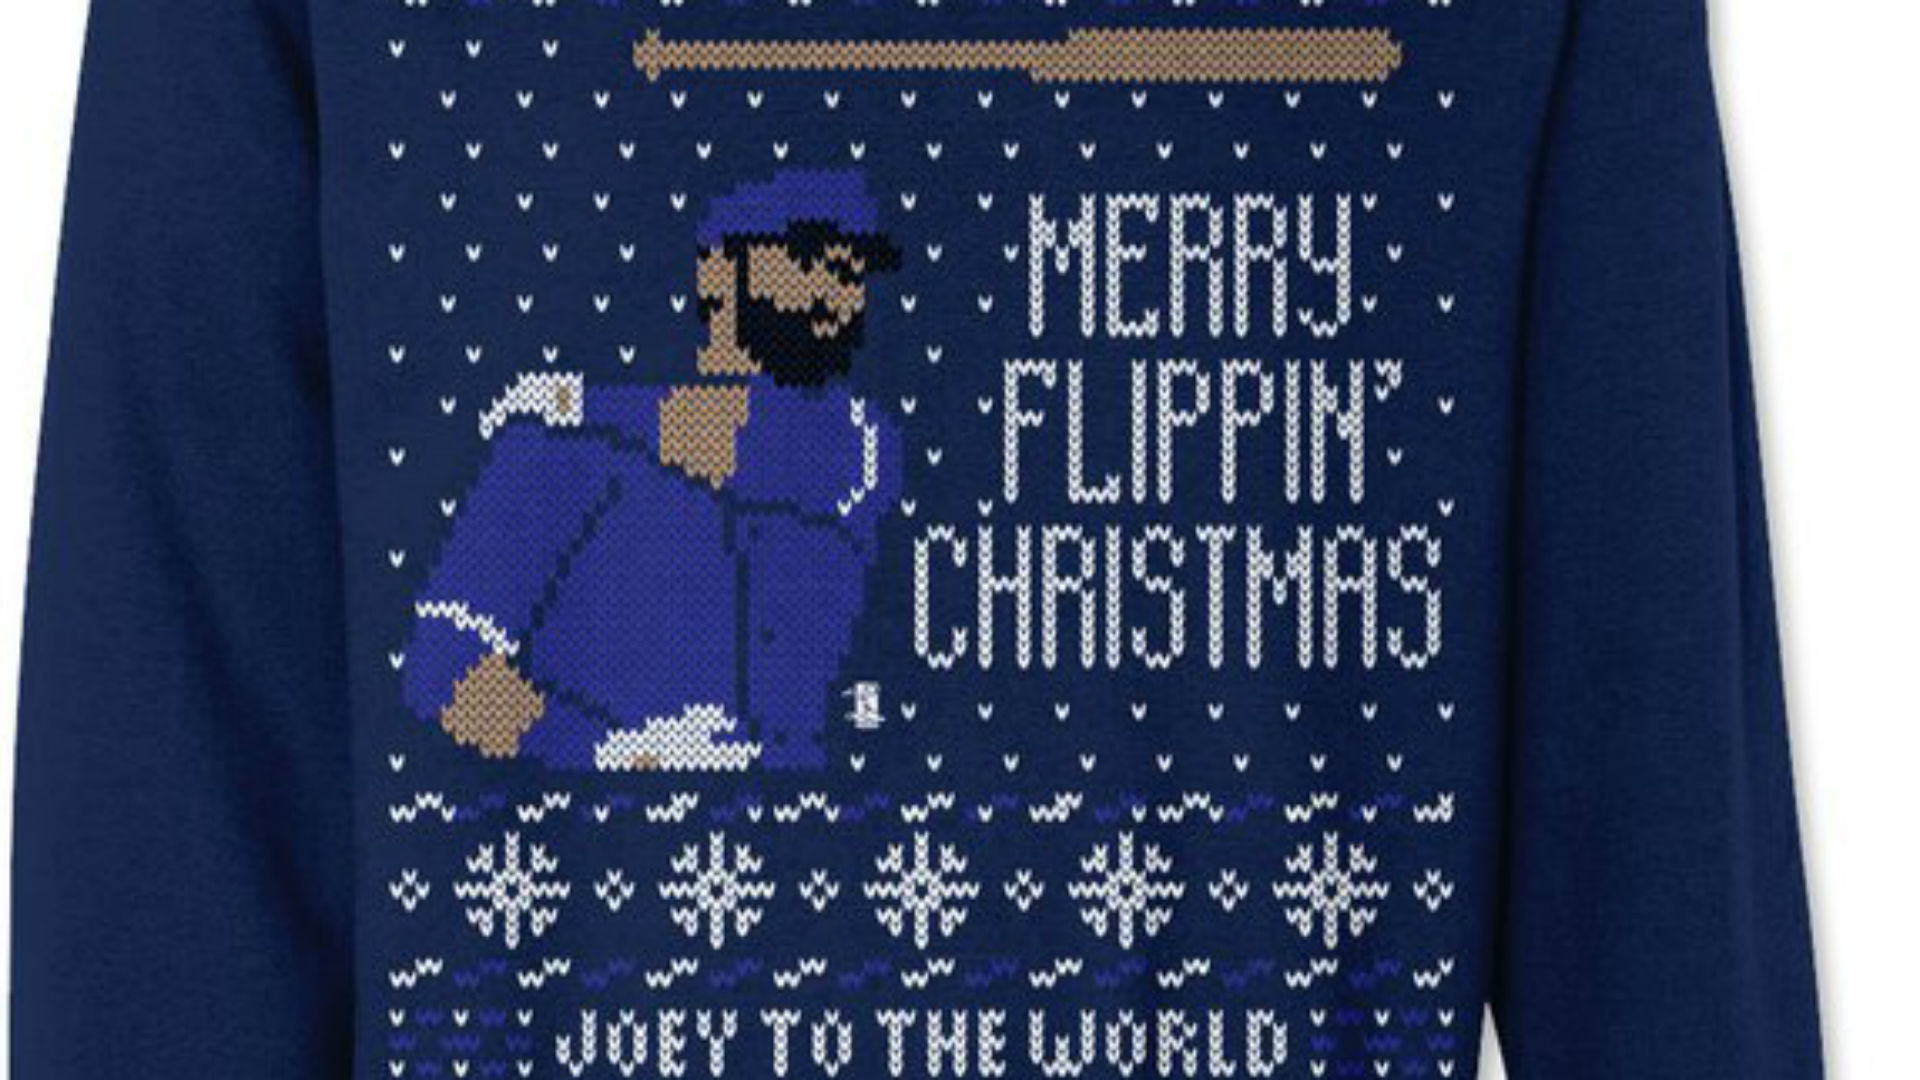 Jose Bautista's bat flip immortalized on ugly Christmas sweater ...